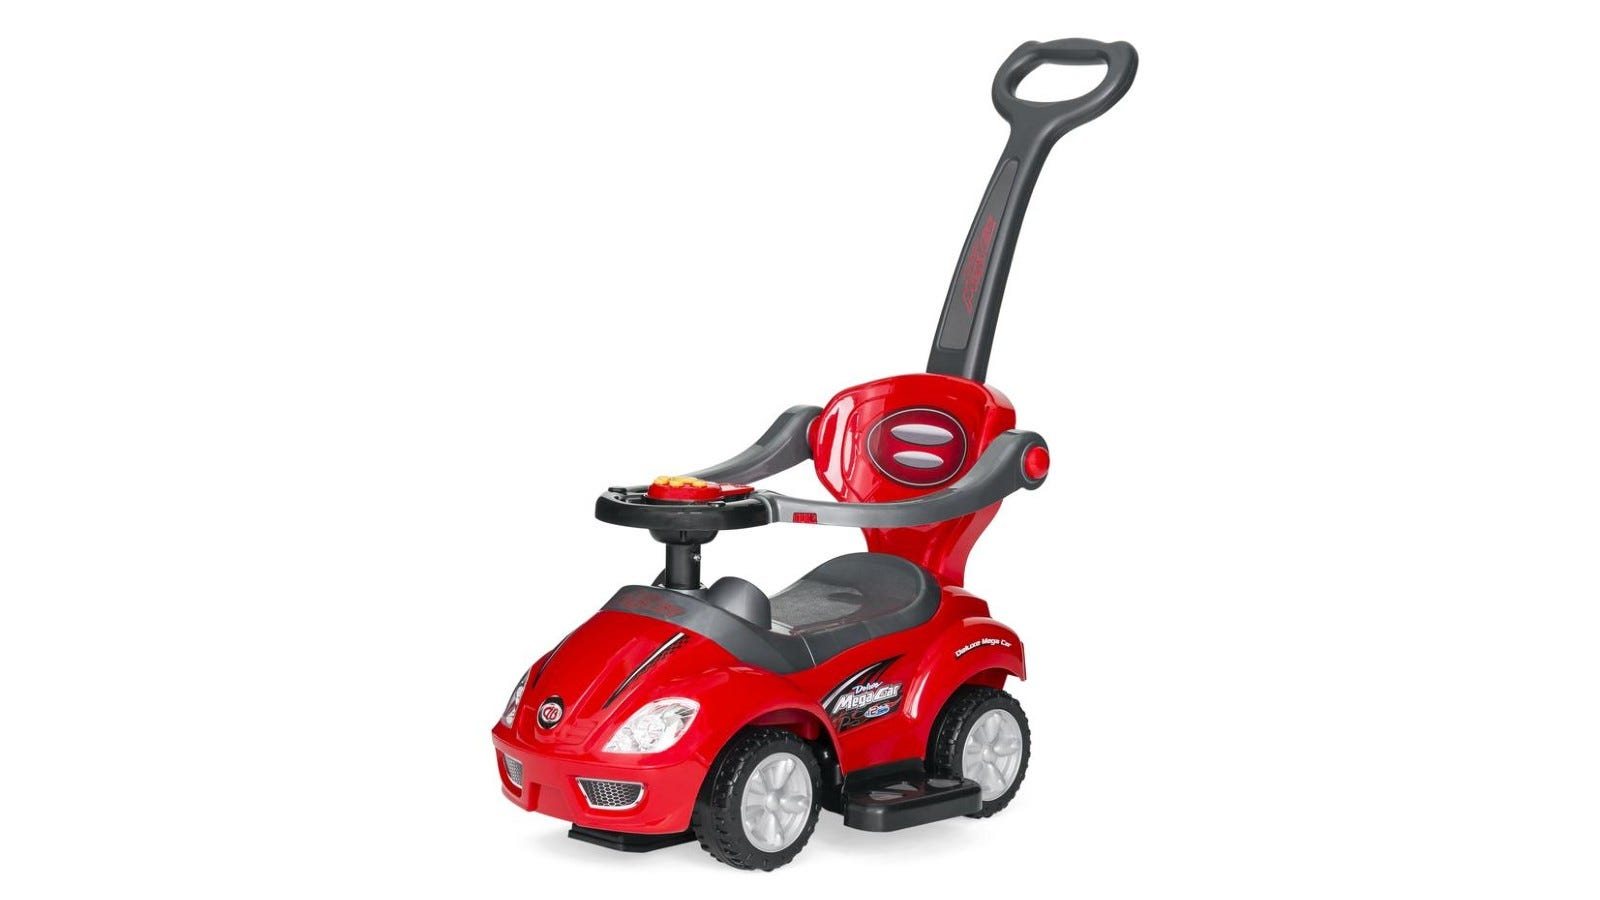 A red and gray pushcar.